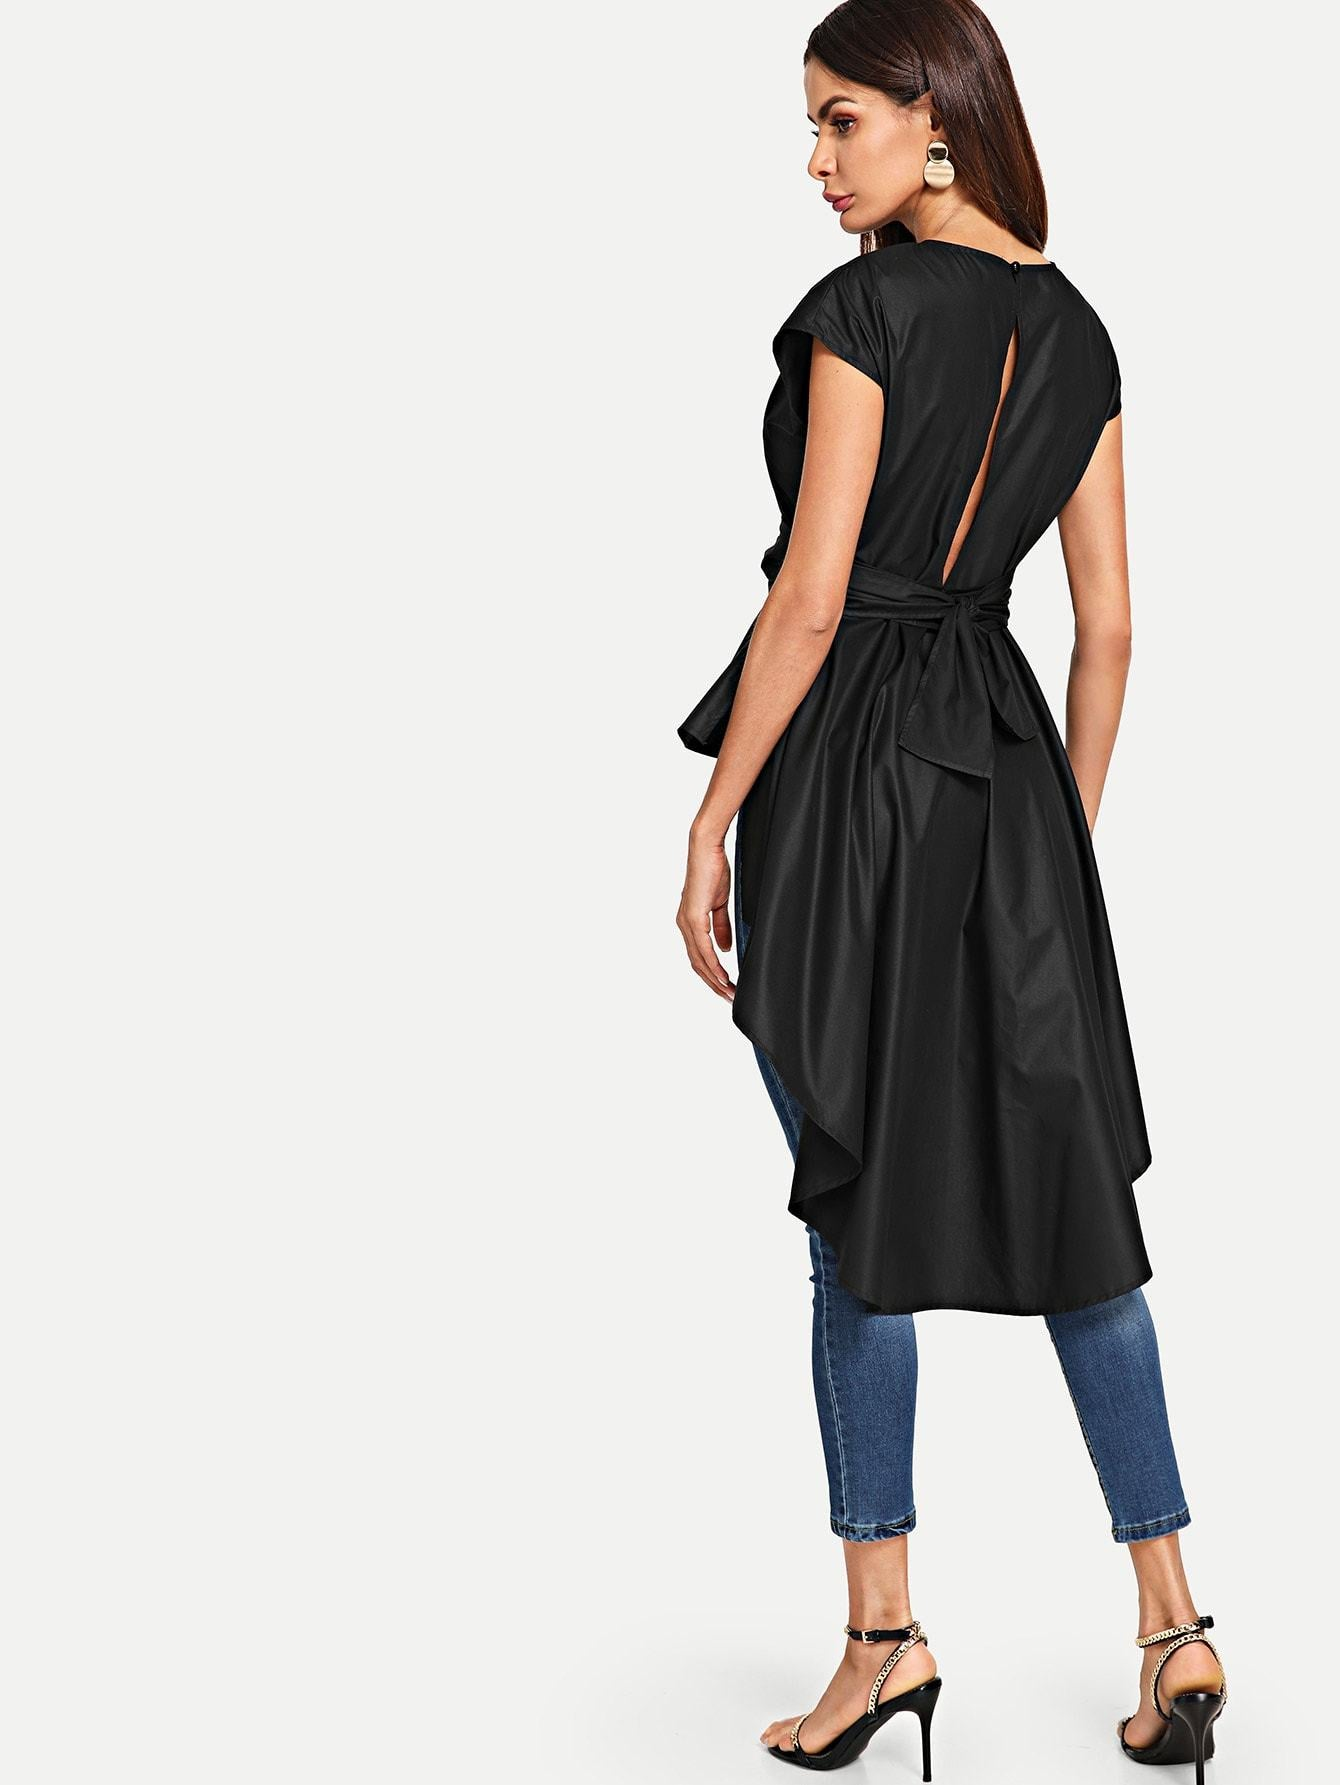 Asymmetrical Hem Button Back Belted Top